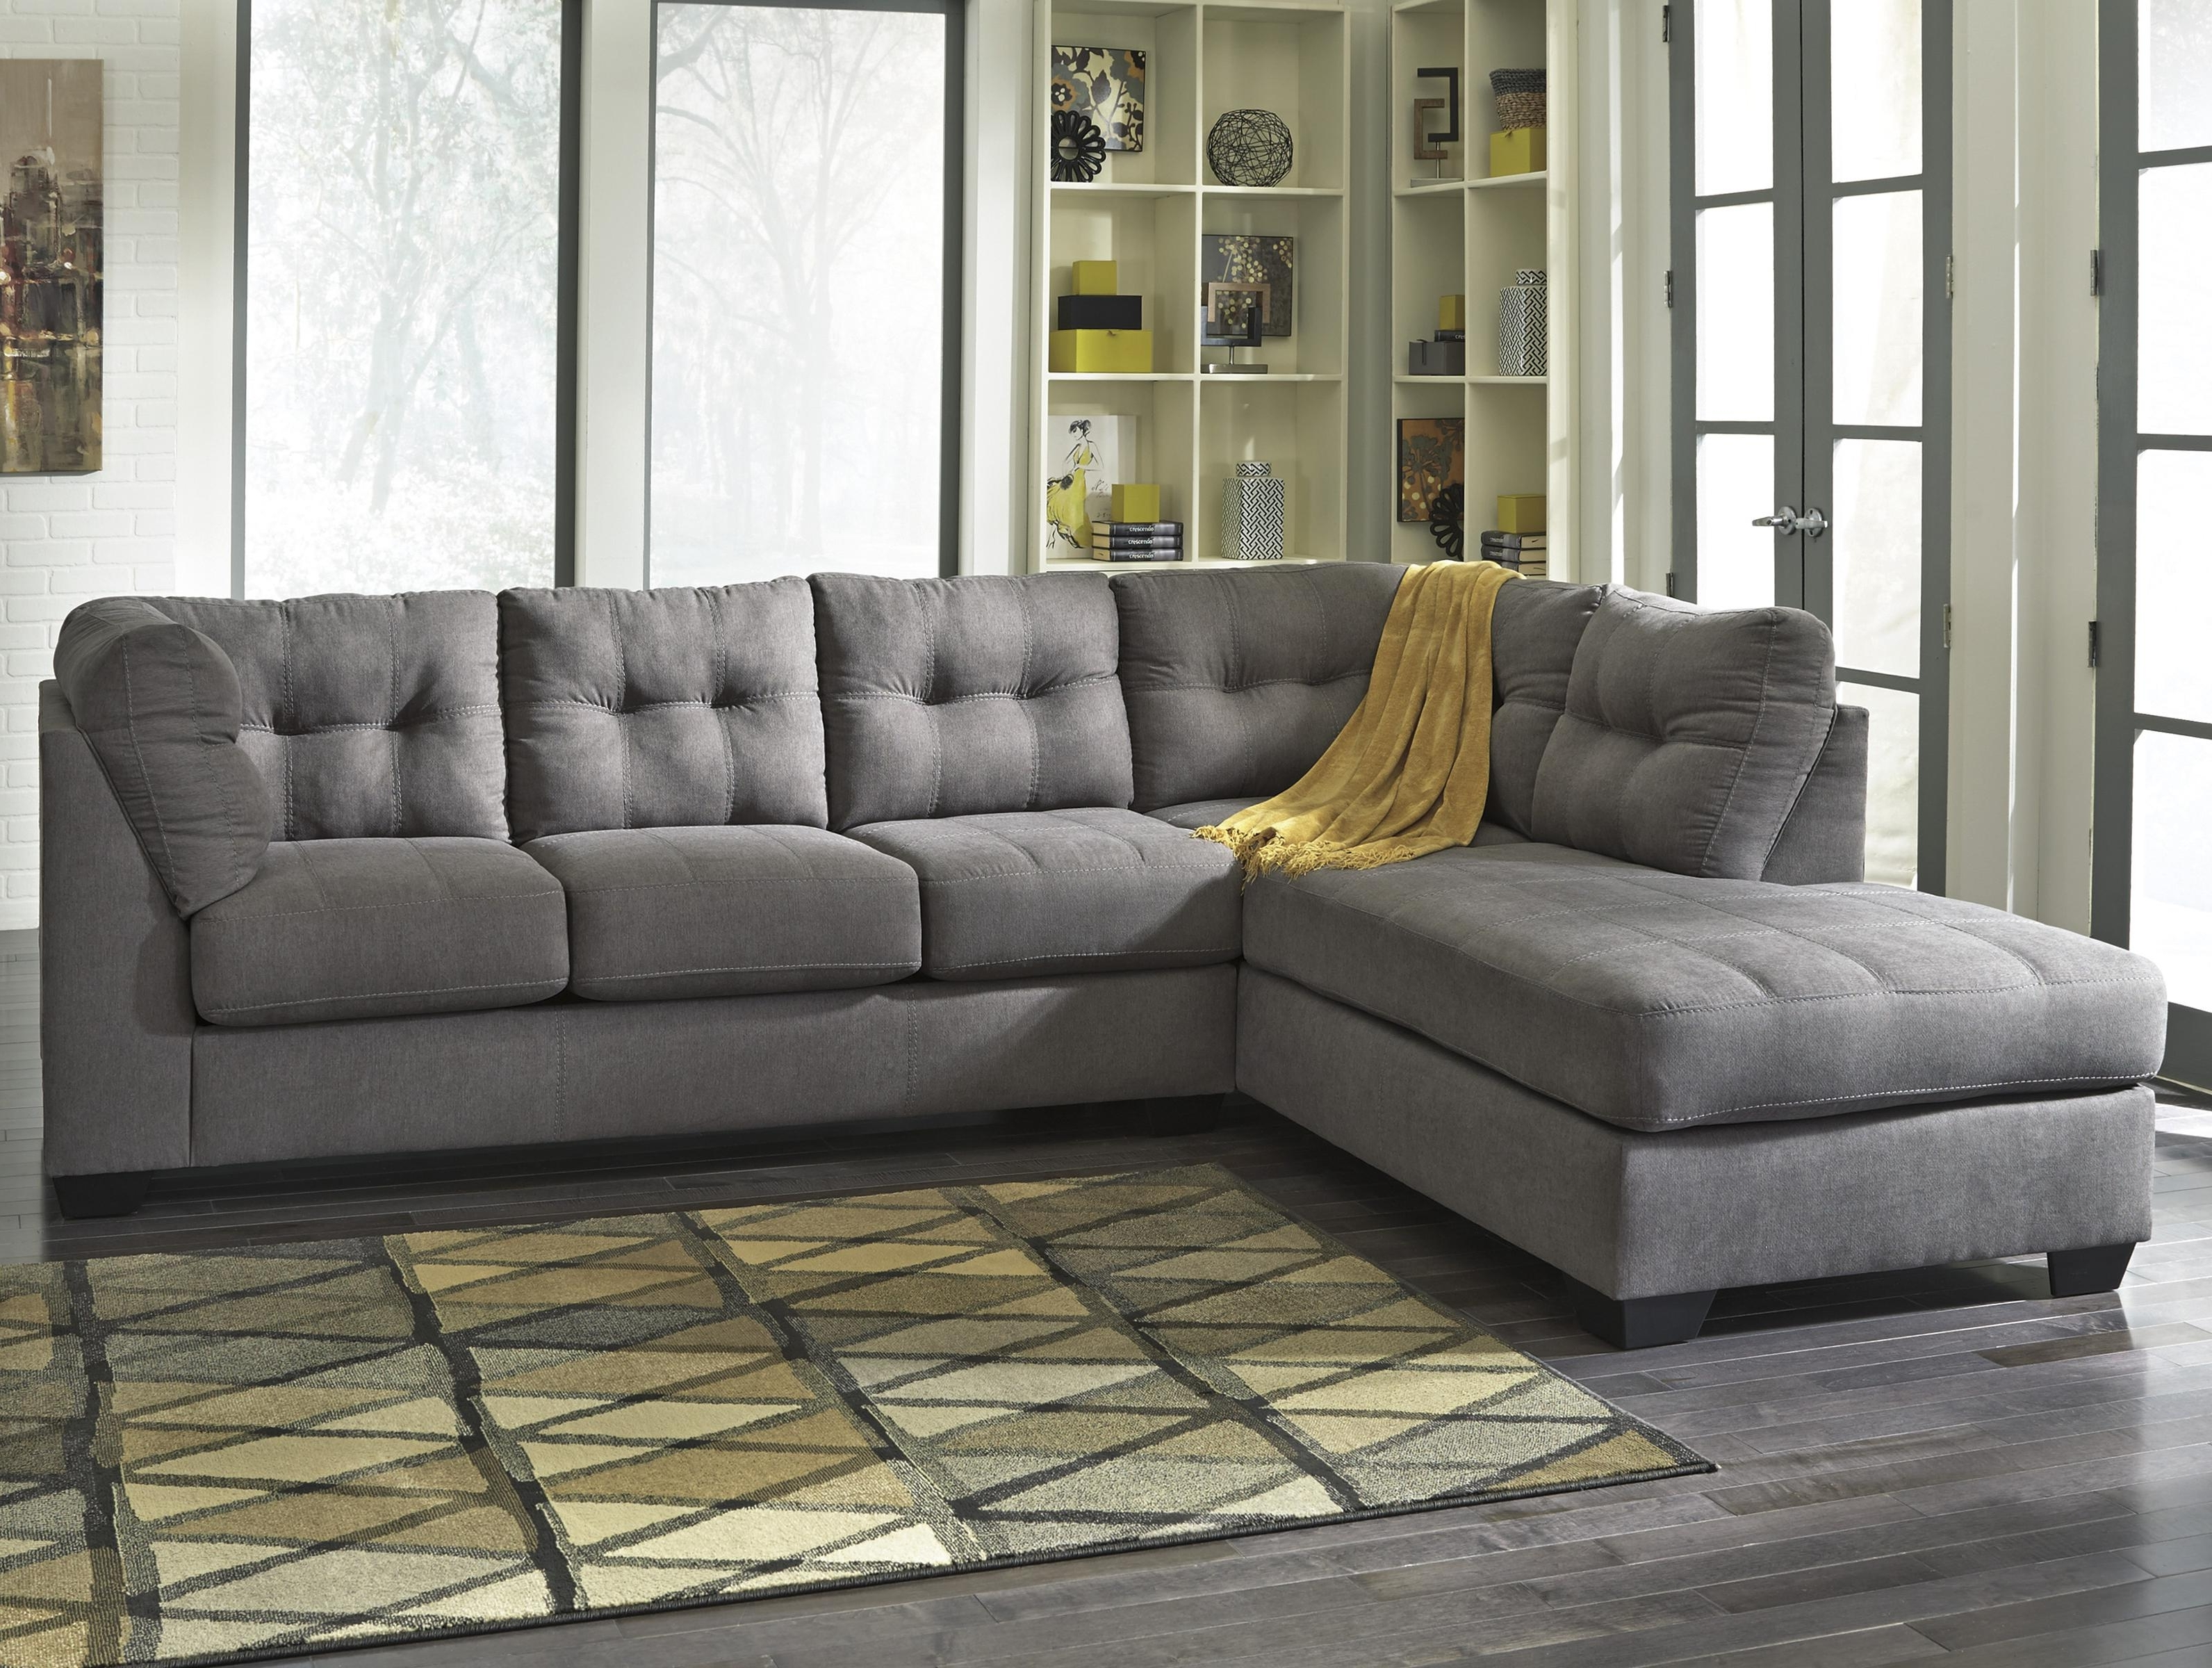 Famous Reversible Chaise Sectionals For Sleeper Sectional With Reversible Chaise Combination Recliner (View 5 of 15)